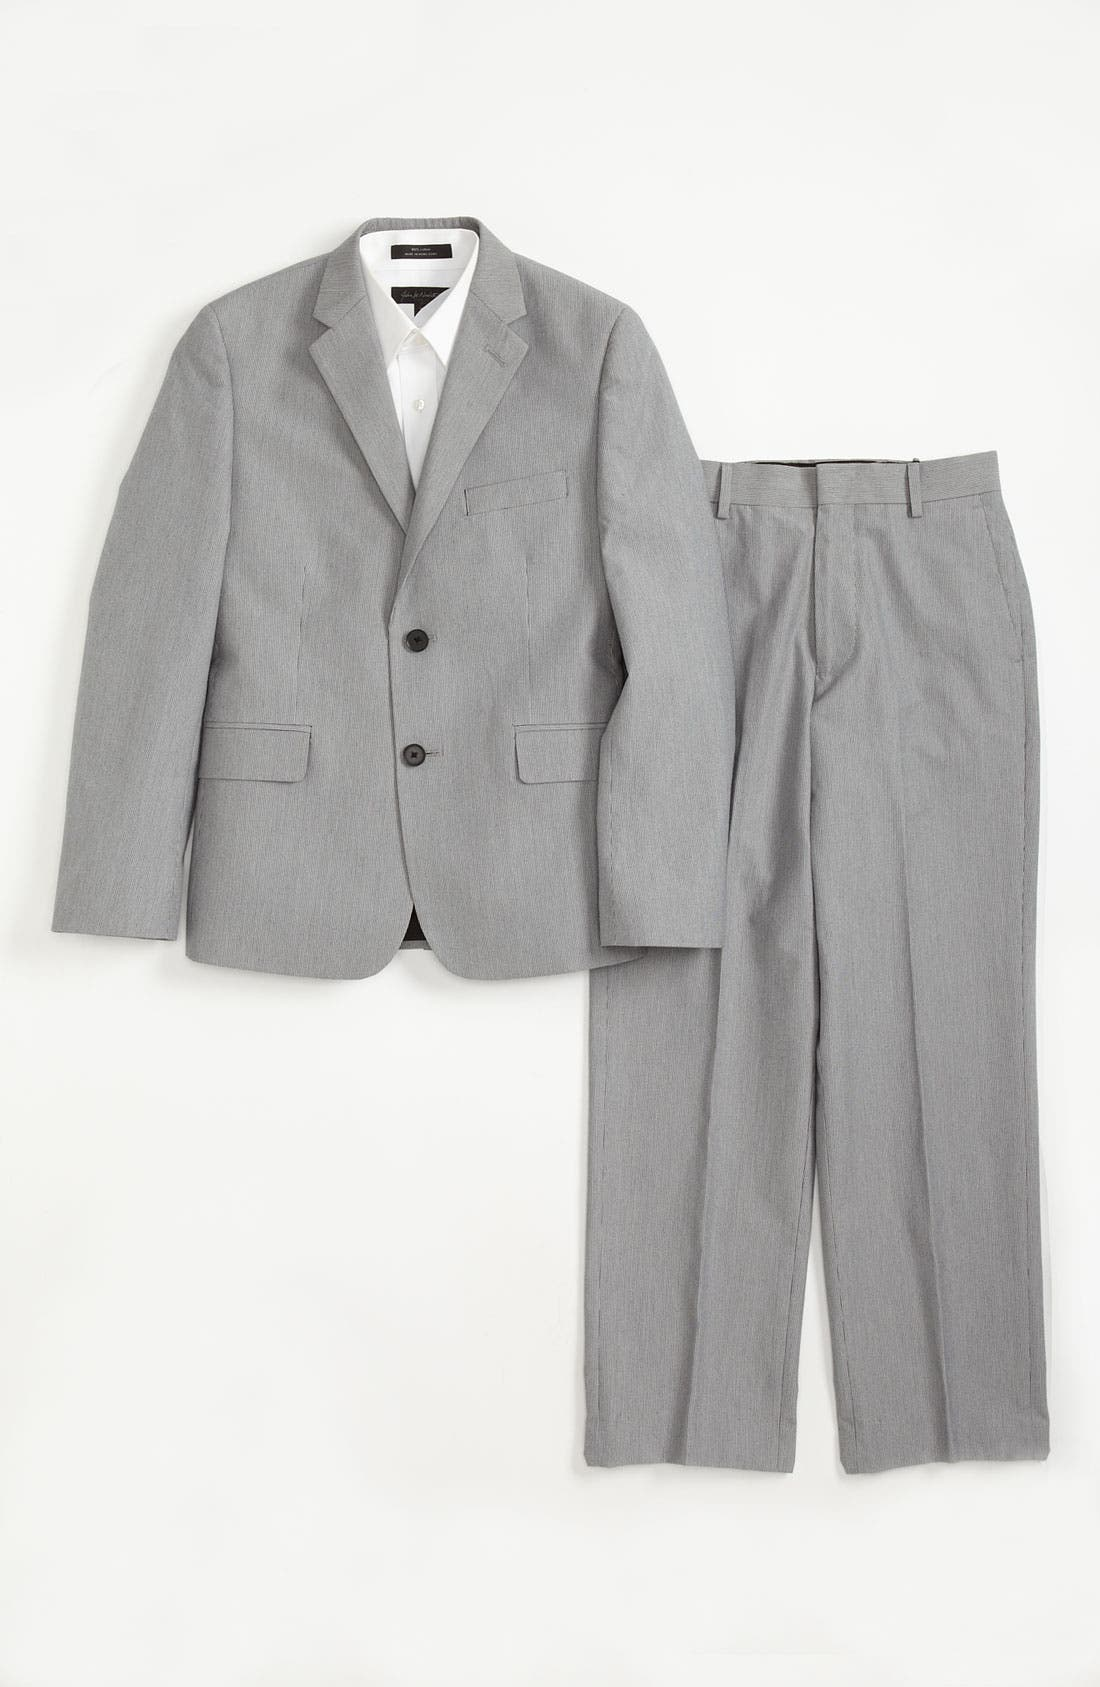 Main Image - C2 by Calibrate Suit Jacket, Dress Shirt & Trousers (Big Boys)